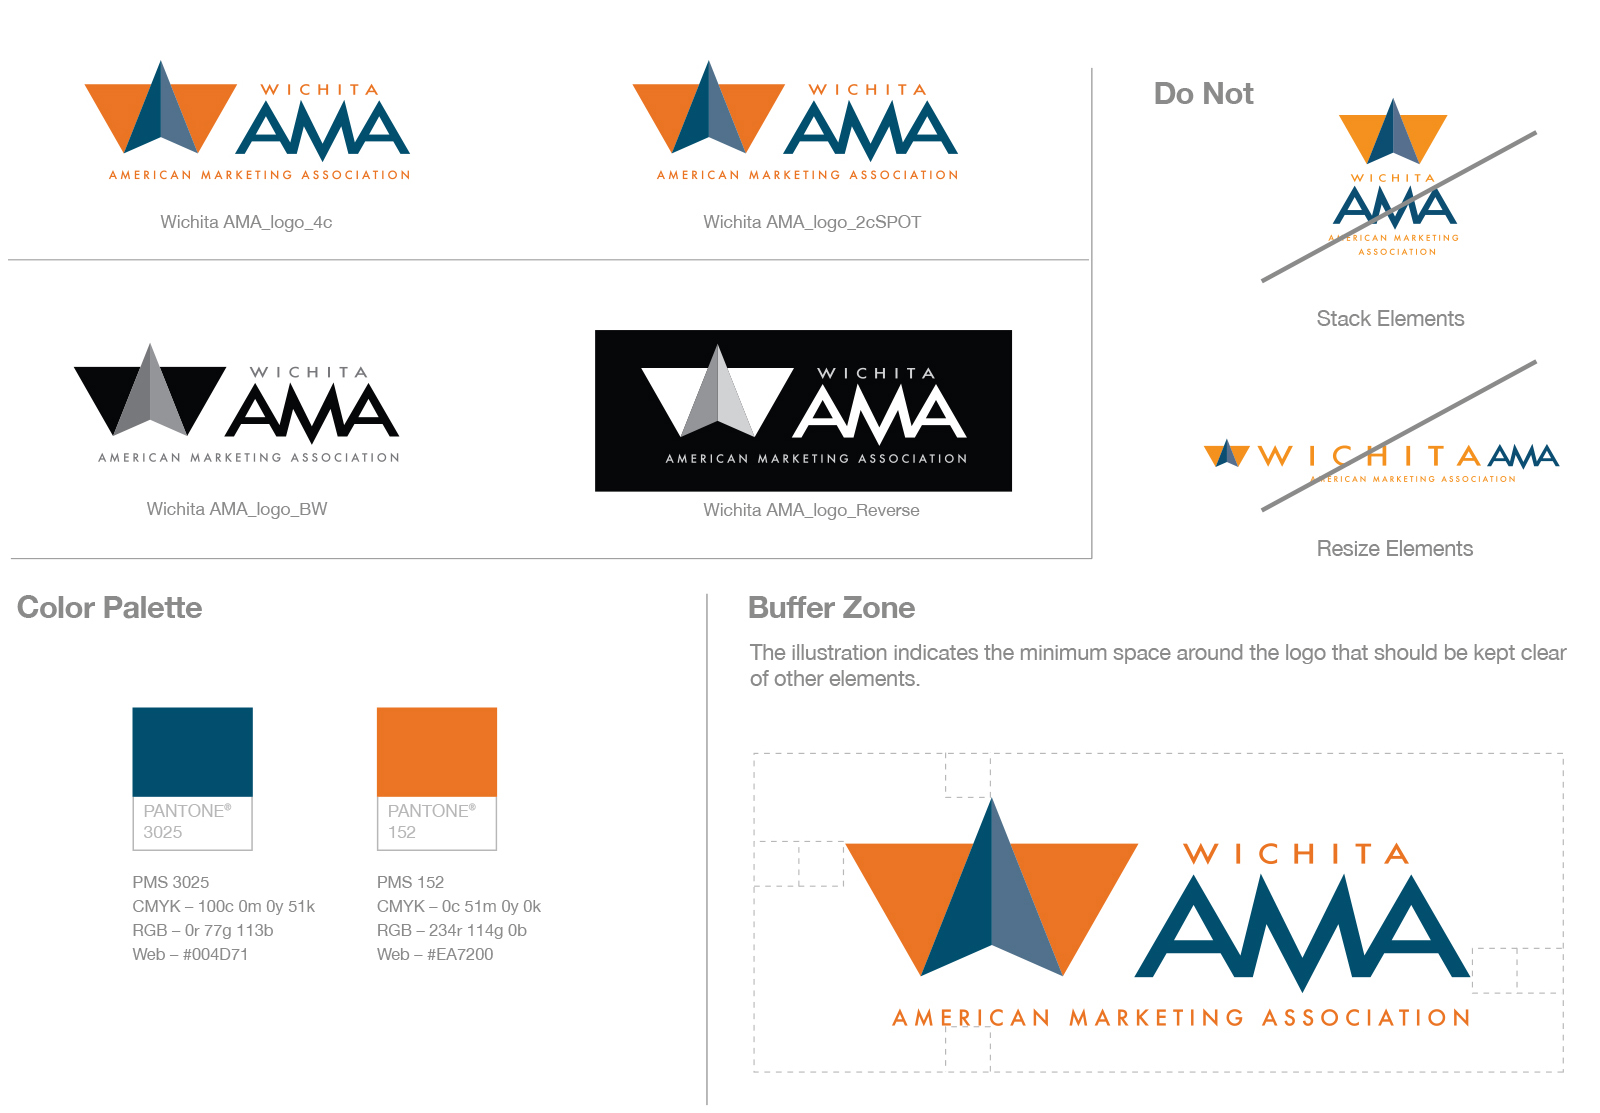 wichitaama dustin commer  wama logo brand guidelines